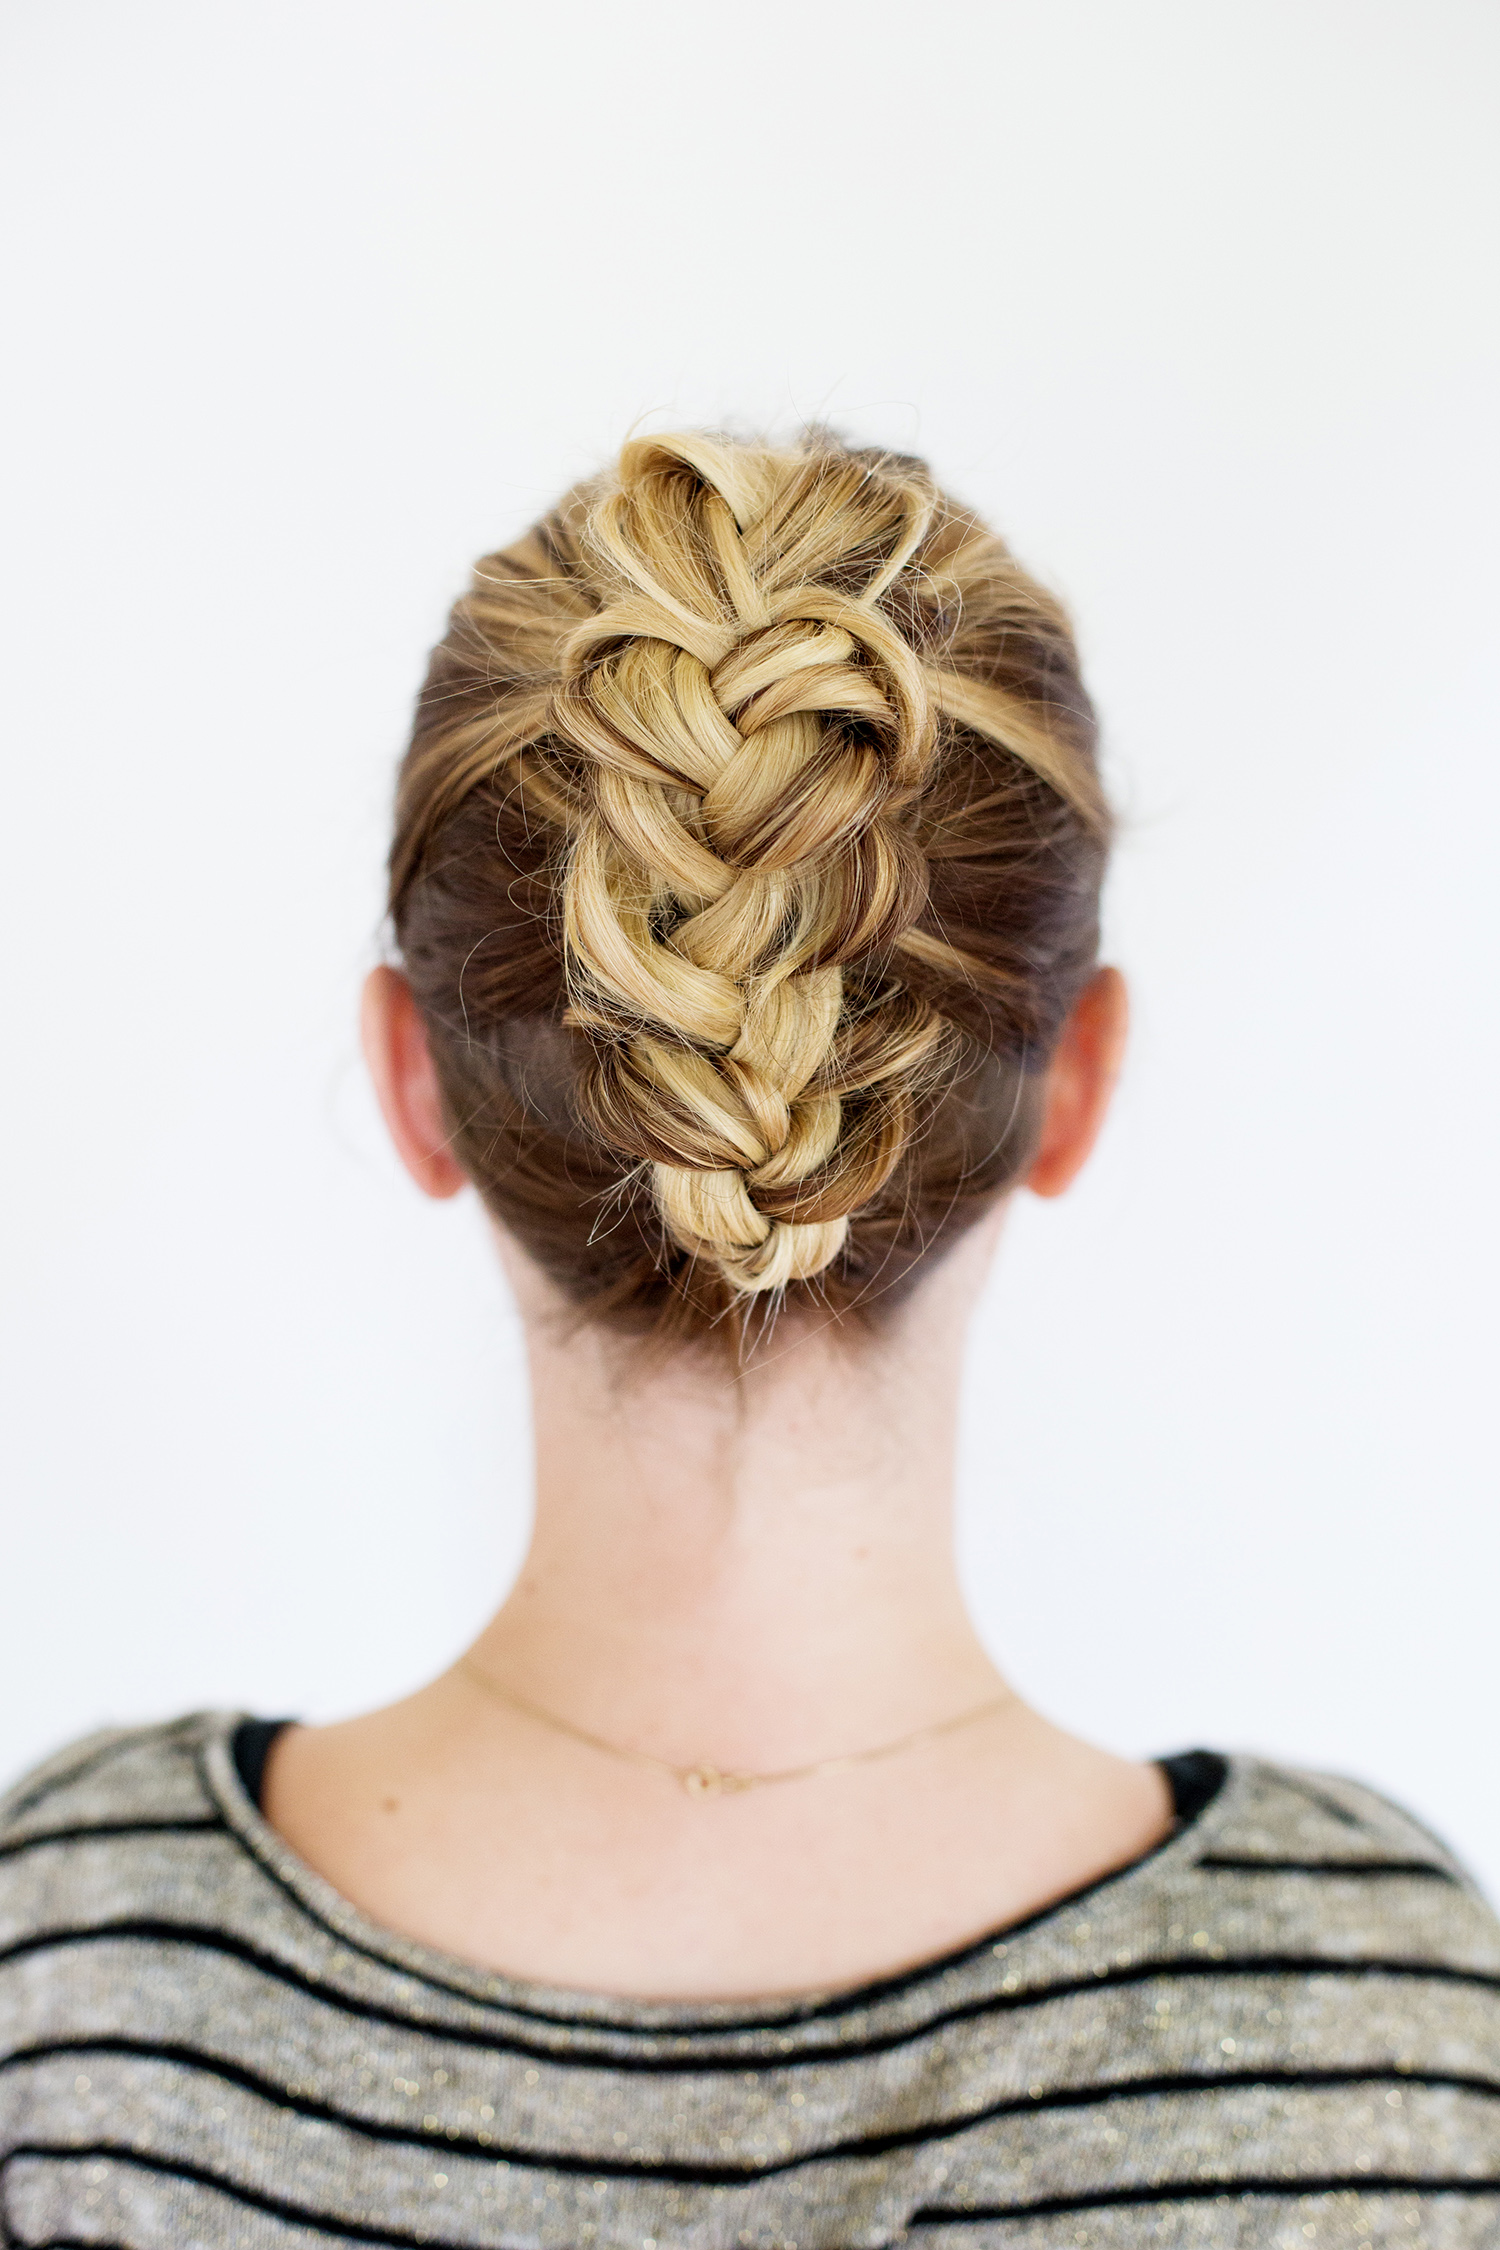 Diy tucked braided updo